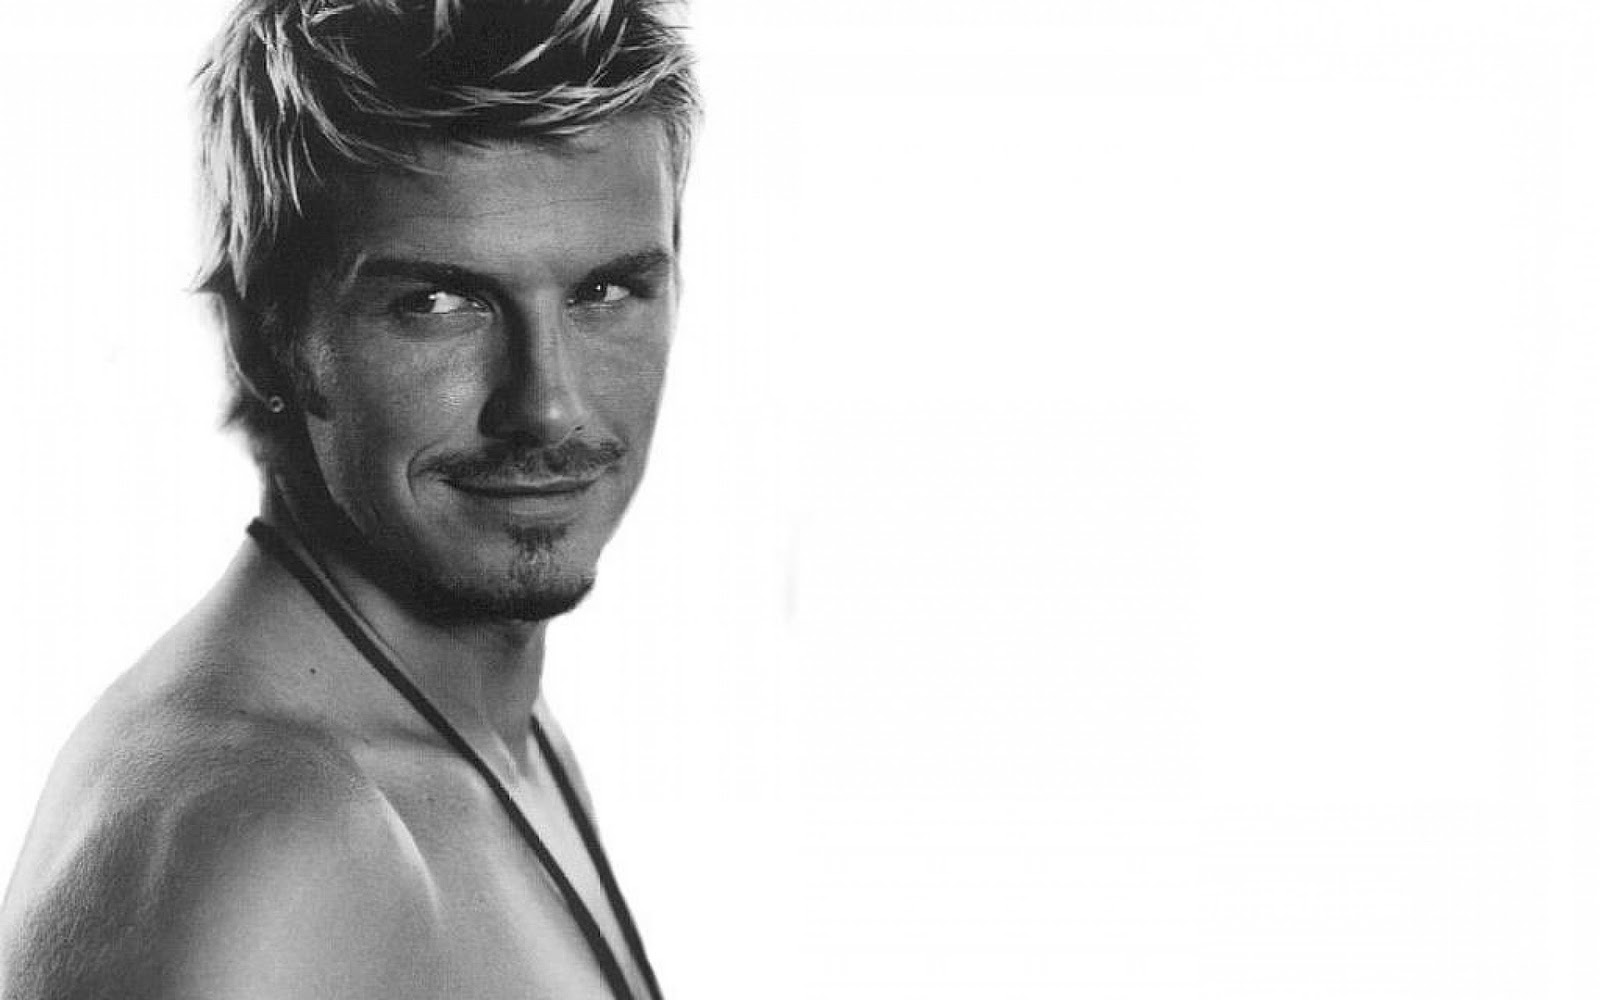 wallpapers david beckham wallpapers david beckham wallpapers david 1600x1000